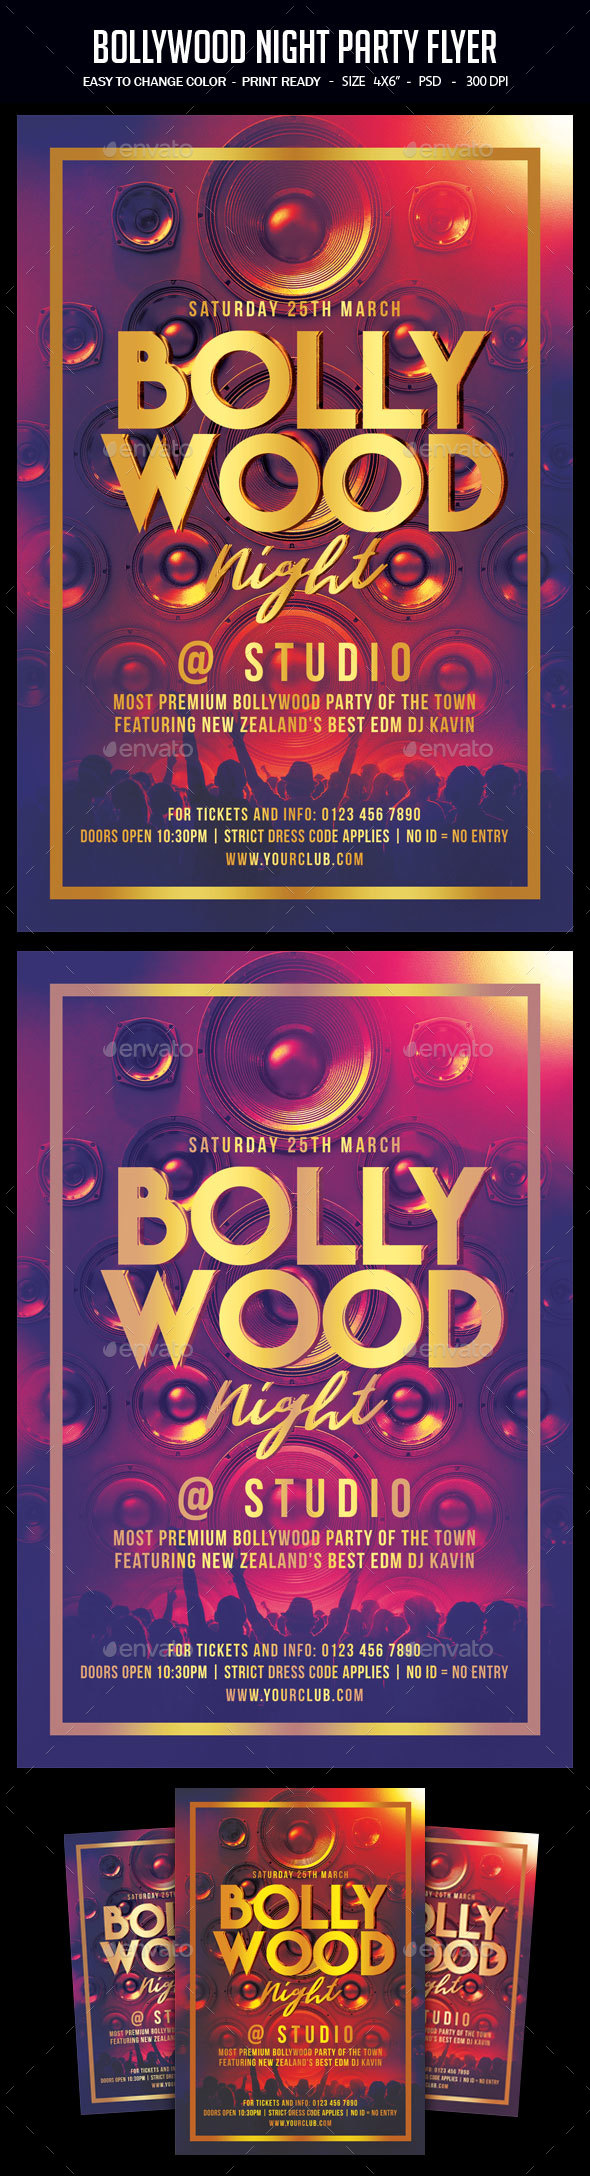 Bollywood Night Party Flyer - Clubs & Parties Events